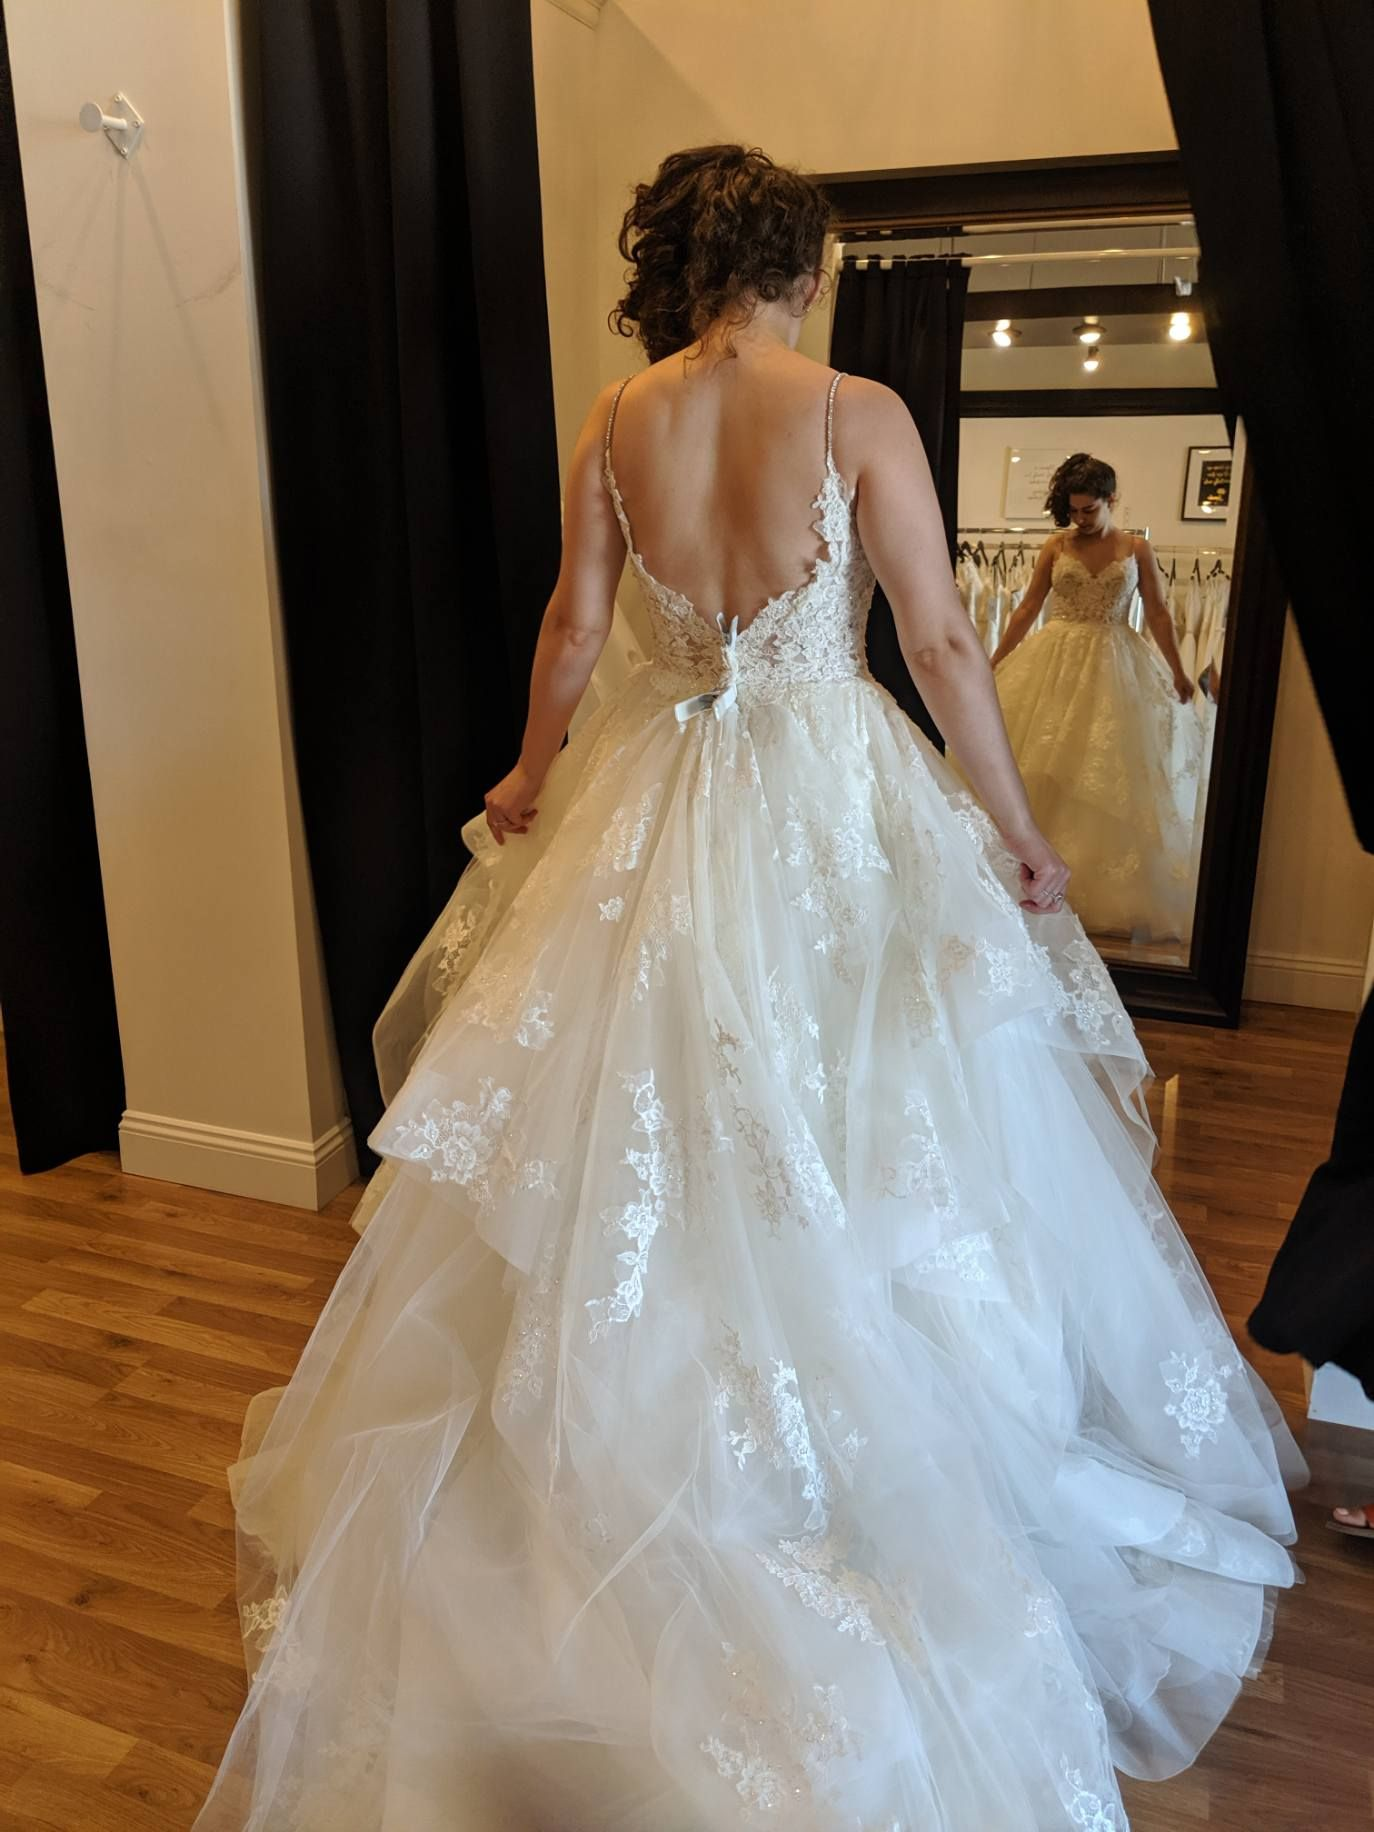 Bought My Dress Today Absolutely Obsessed Posted By Bbutterfly01 Wedding Wedding Dresses Lace Dresses Wedding